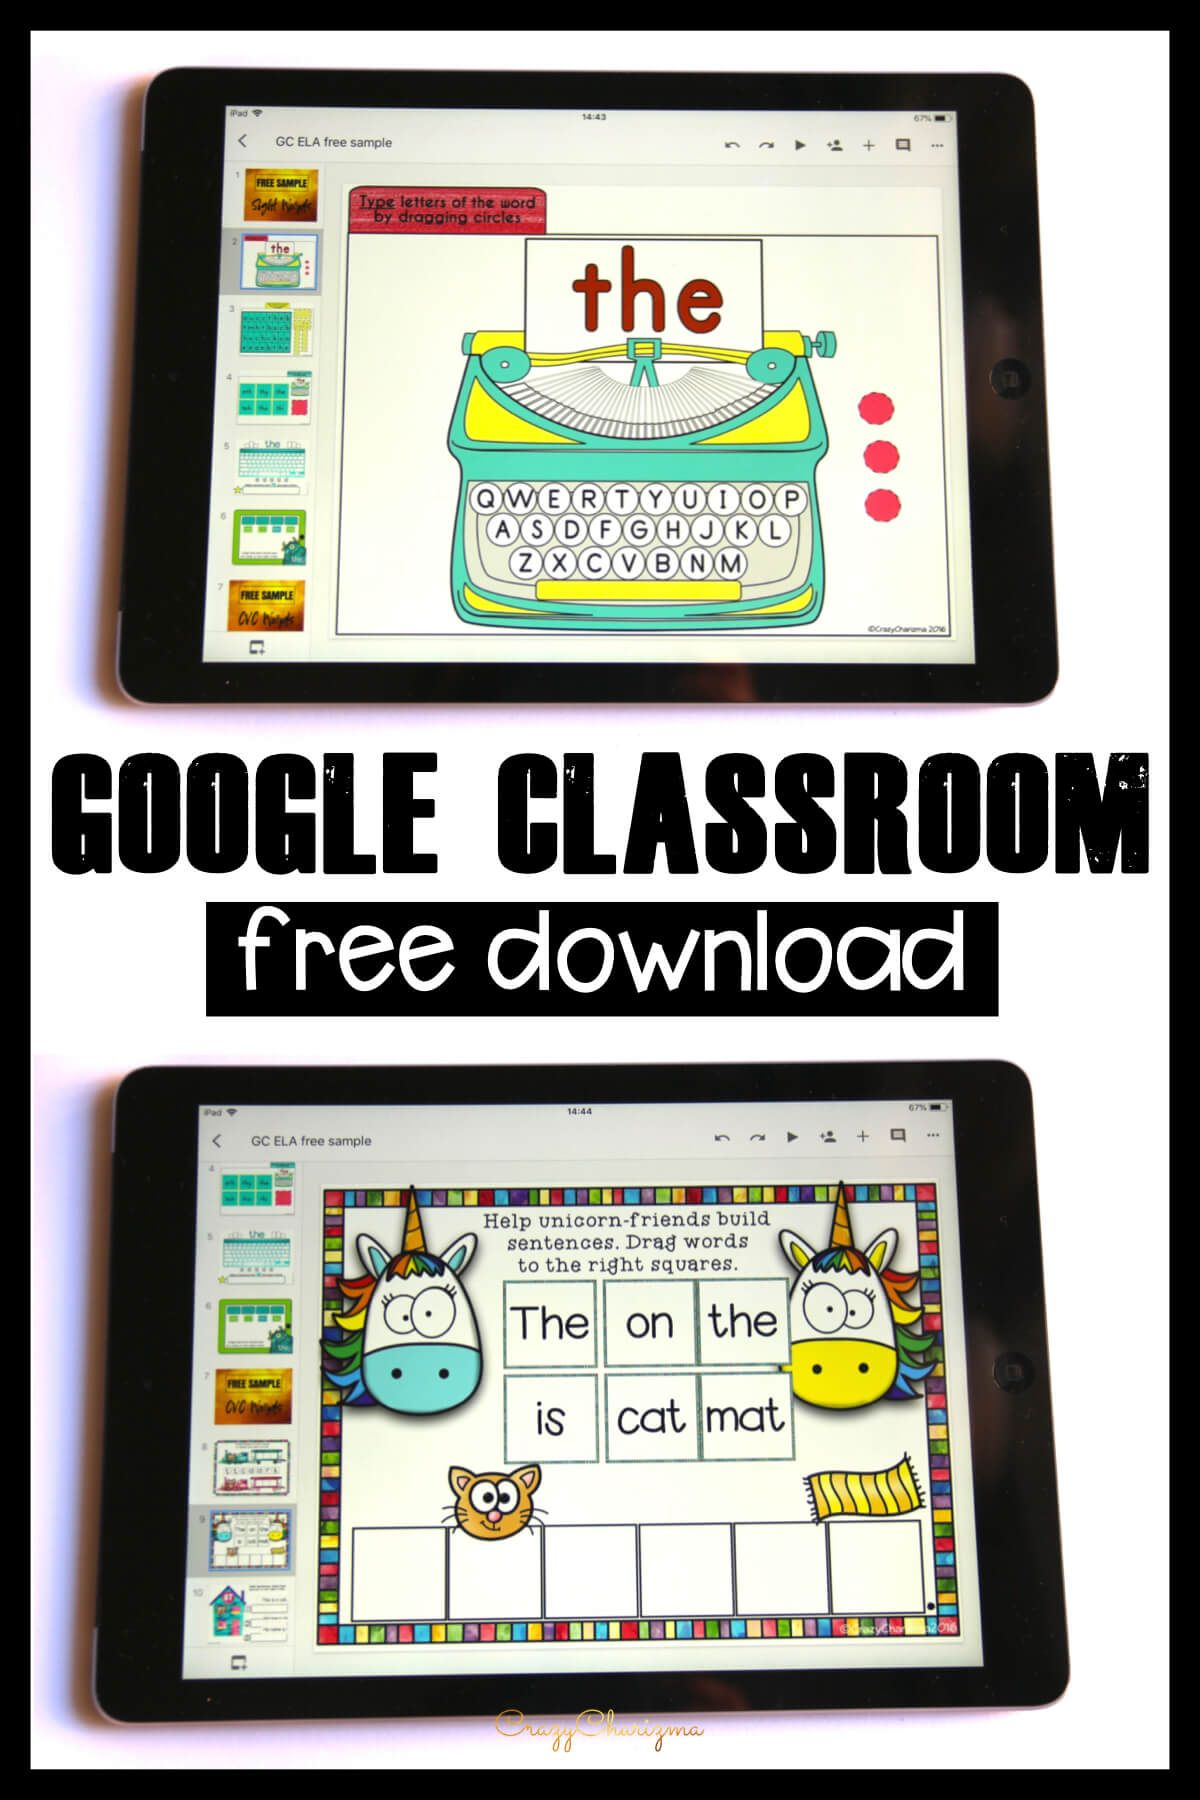 Google Classroom Games in Primary Grades | Free Activities to Try. Want to try Google Classroom in kindergarten or primary grades? Need to practice sight words and phonics? Download a free sample of ELA Games and Centers. Try interactive games on iPads, Chromebooks, tablets, laptops or the smart board!